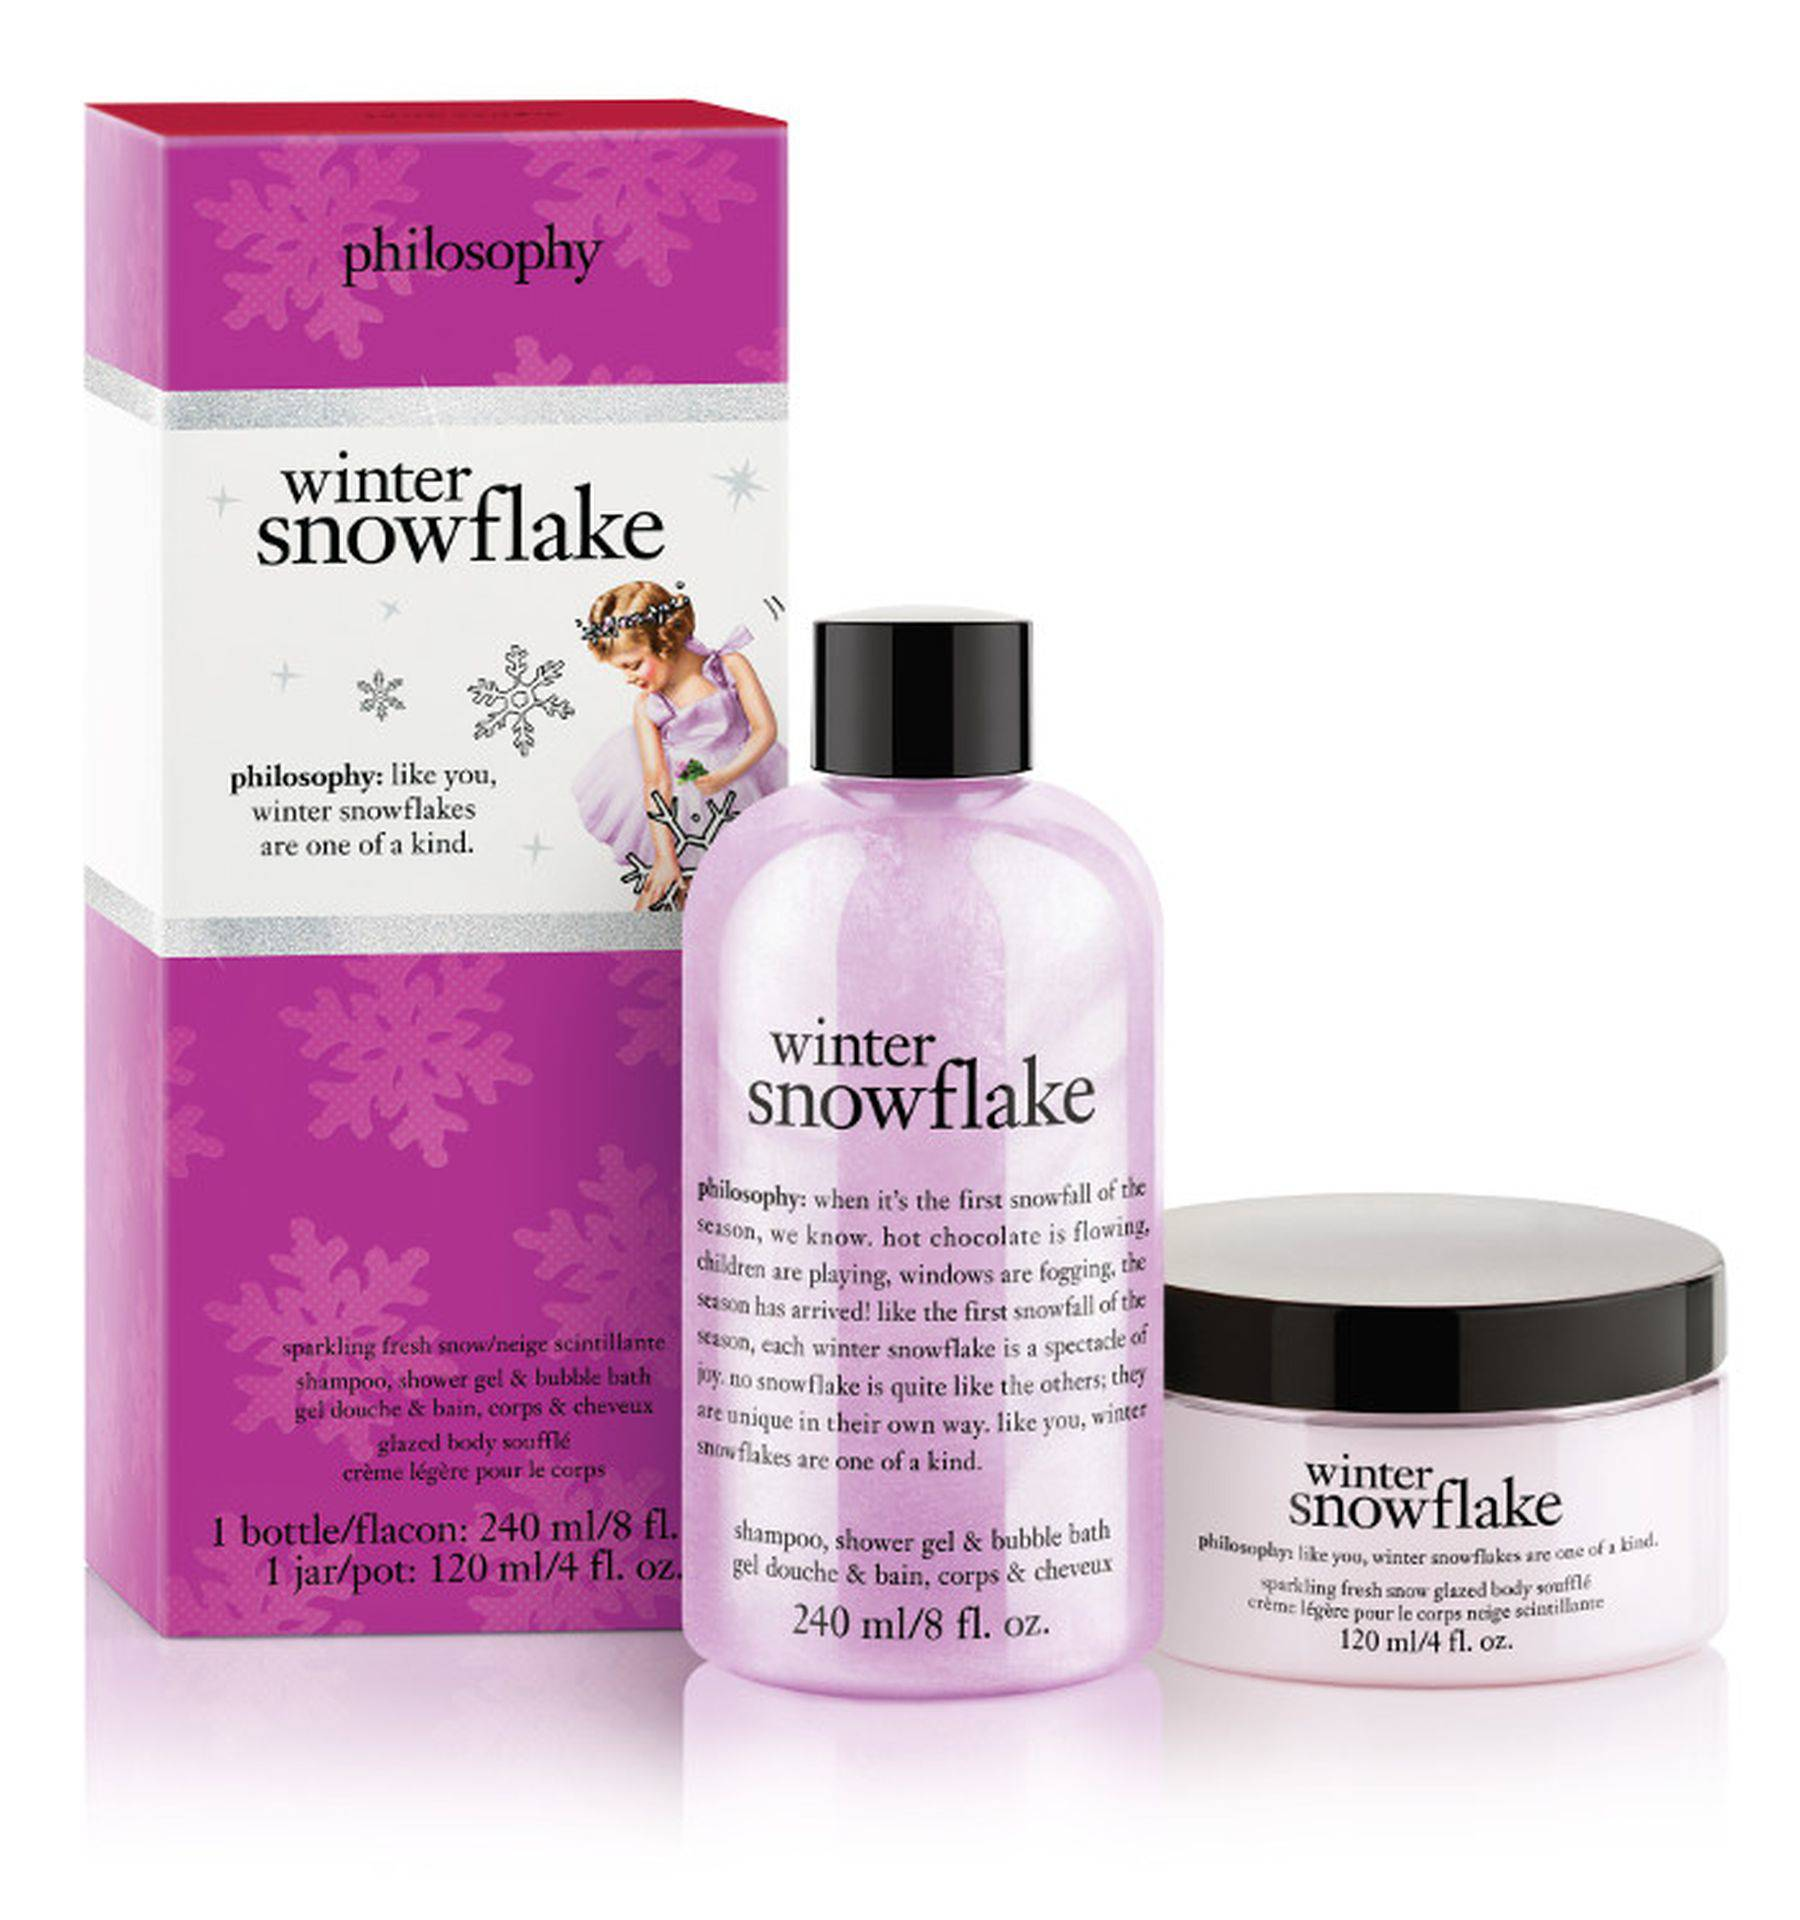 Philosophy winter snowflake duo